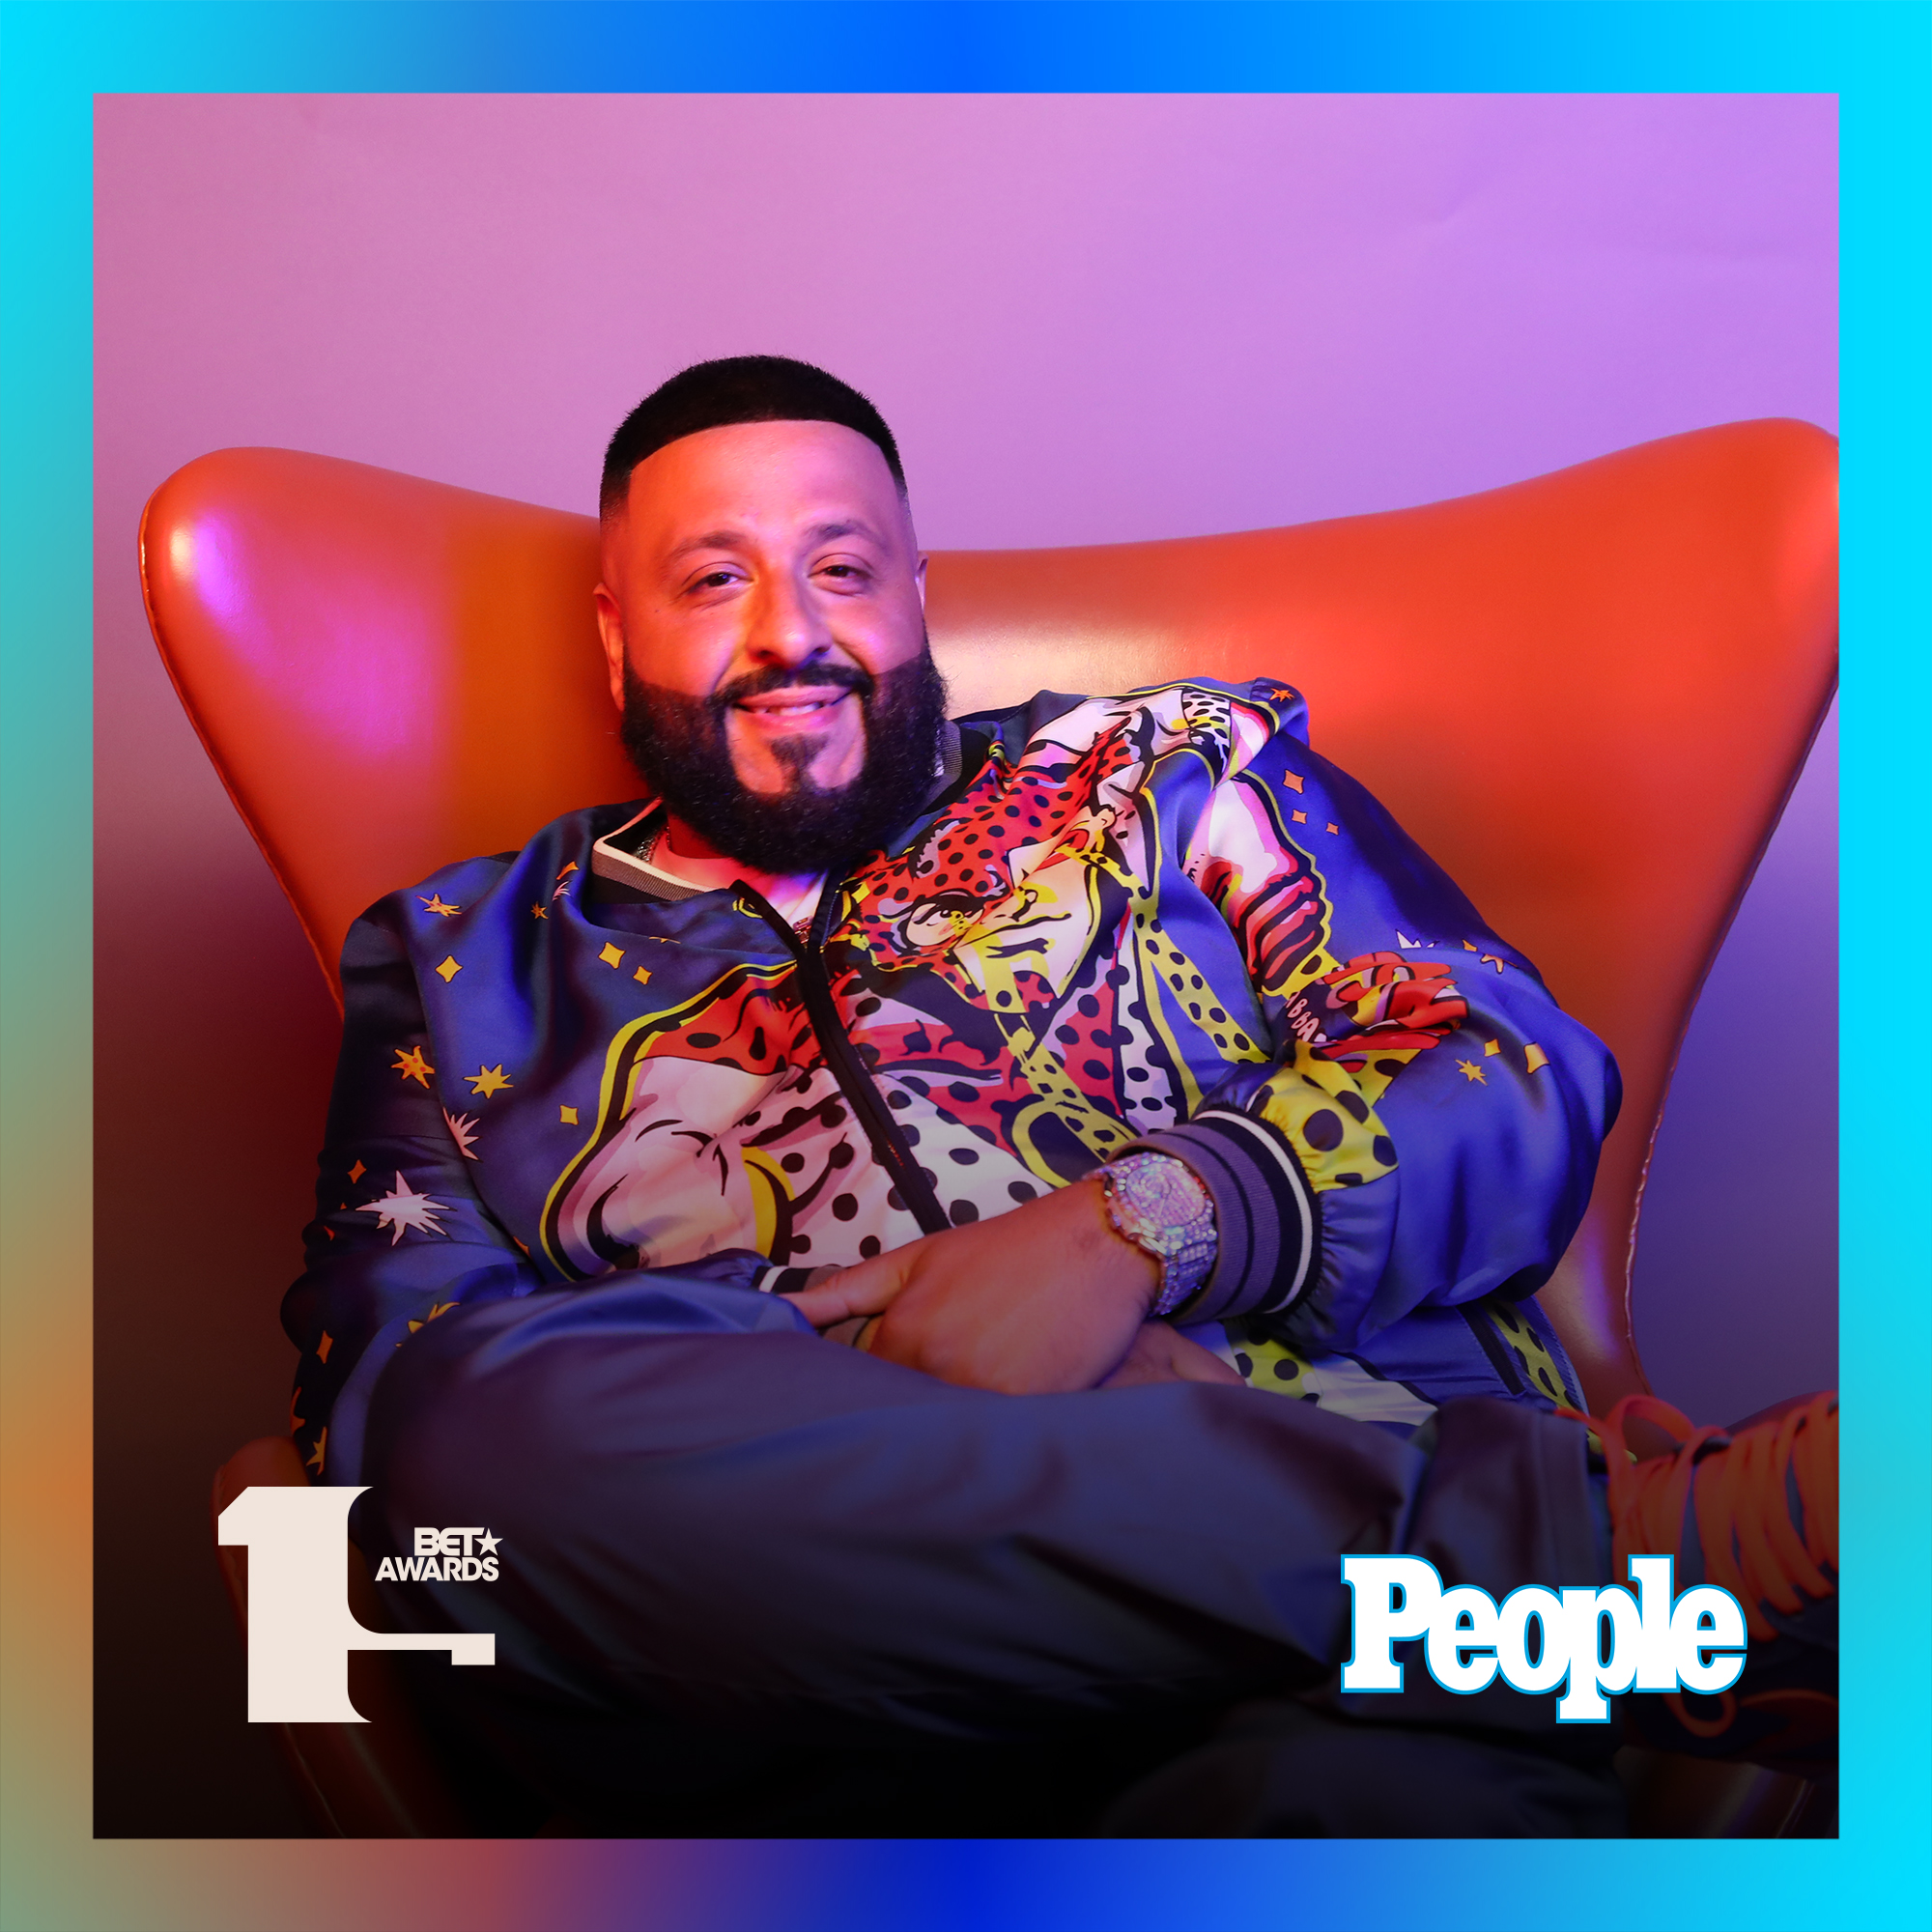 DJ Khaled photographed at the 2019 BET Awards by Bennett Raglin exclusively for PEOPLE Credit: Bennett Raglin